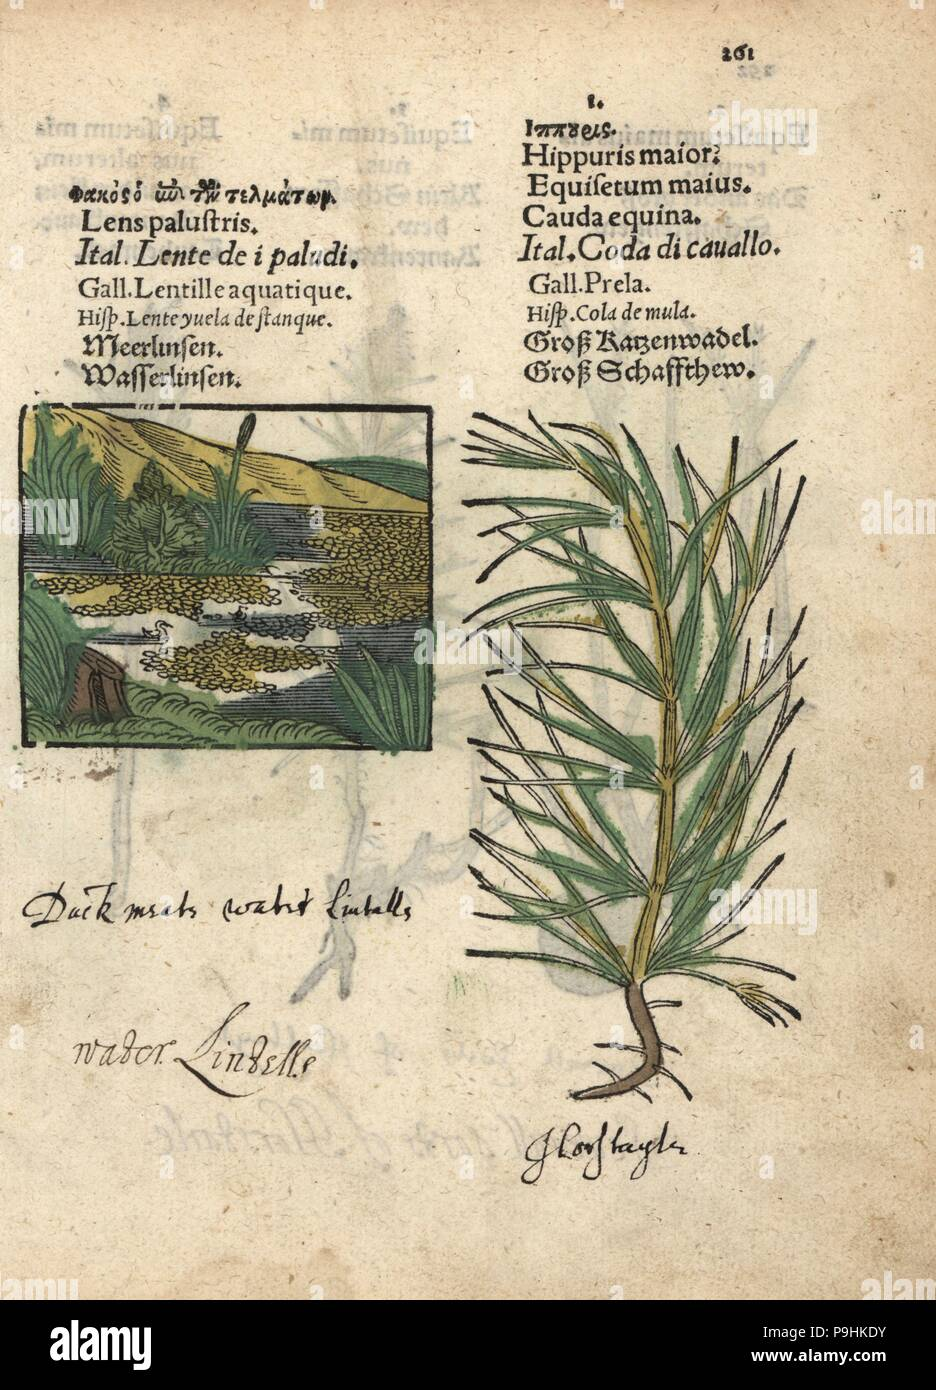 Duckweed, Lemna minor, and marsh horsetail, Equisetum palustre. Handcoloured woodblock engraving of a botanical illustration from Adam Lonicer's Krauterbuch, or Herbal, Frankfurt, 1557. This from a 17th century pirate edition or atlas of illustrations only, with captions in Latin, Greek, French, Italian, German, and in English manuscript. Stock Photo